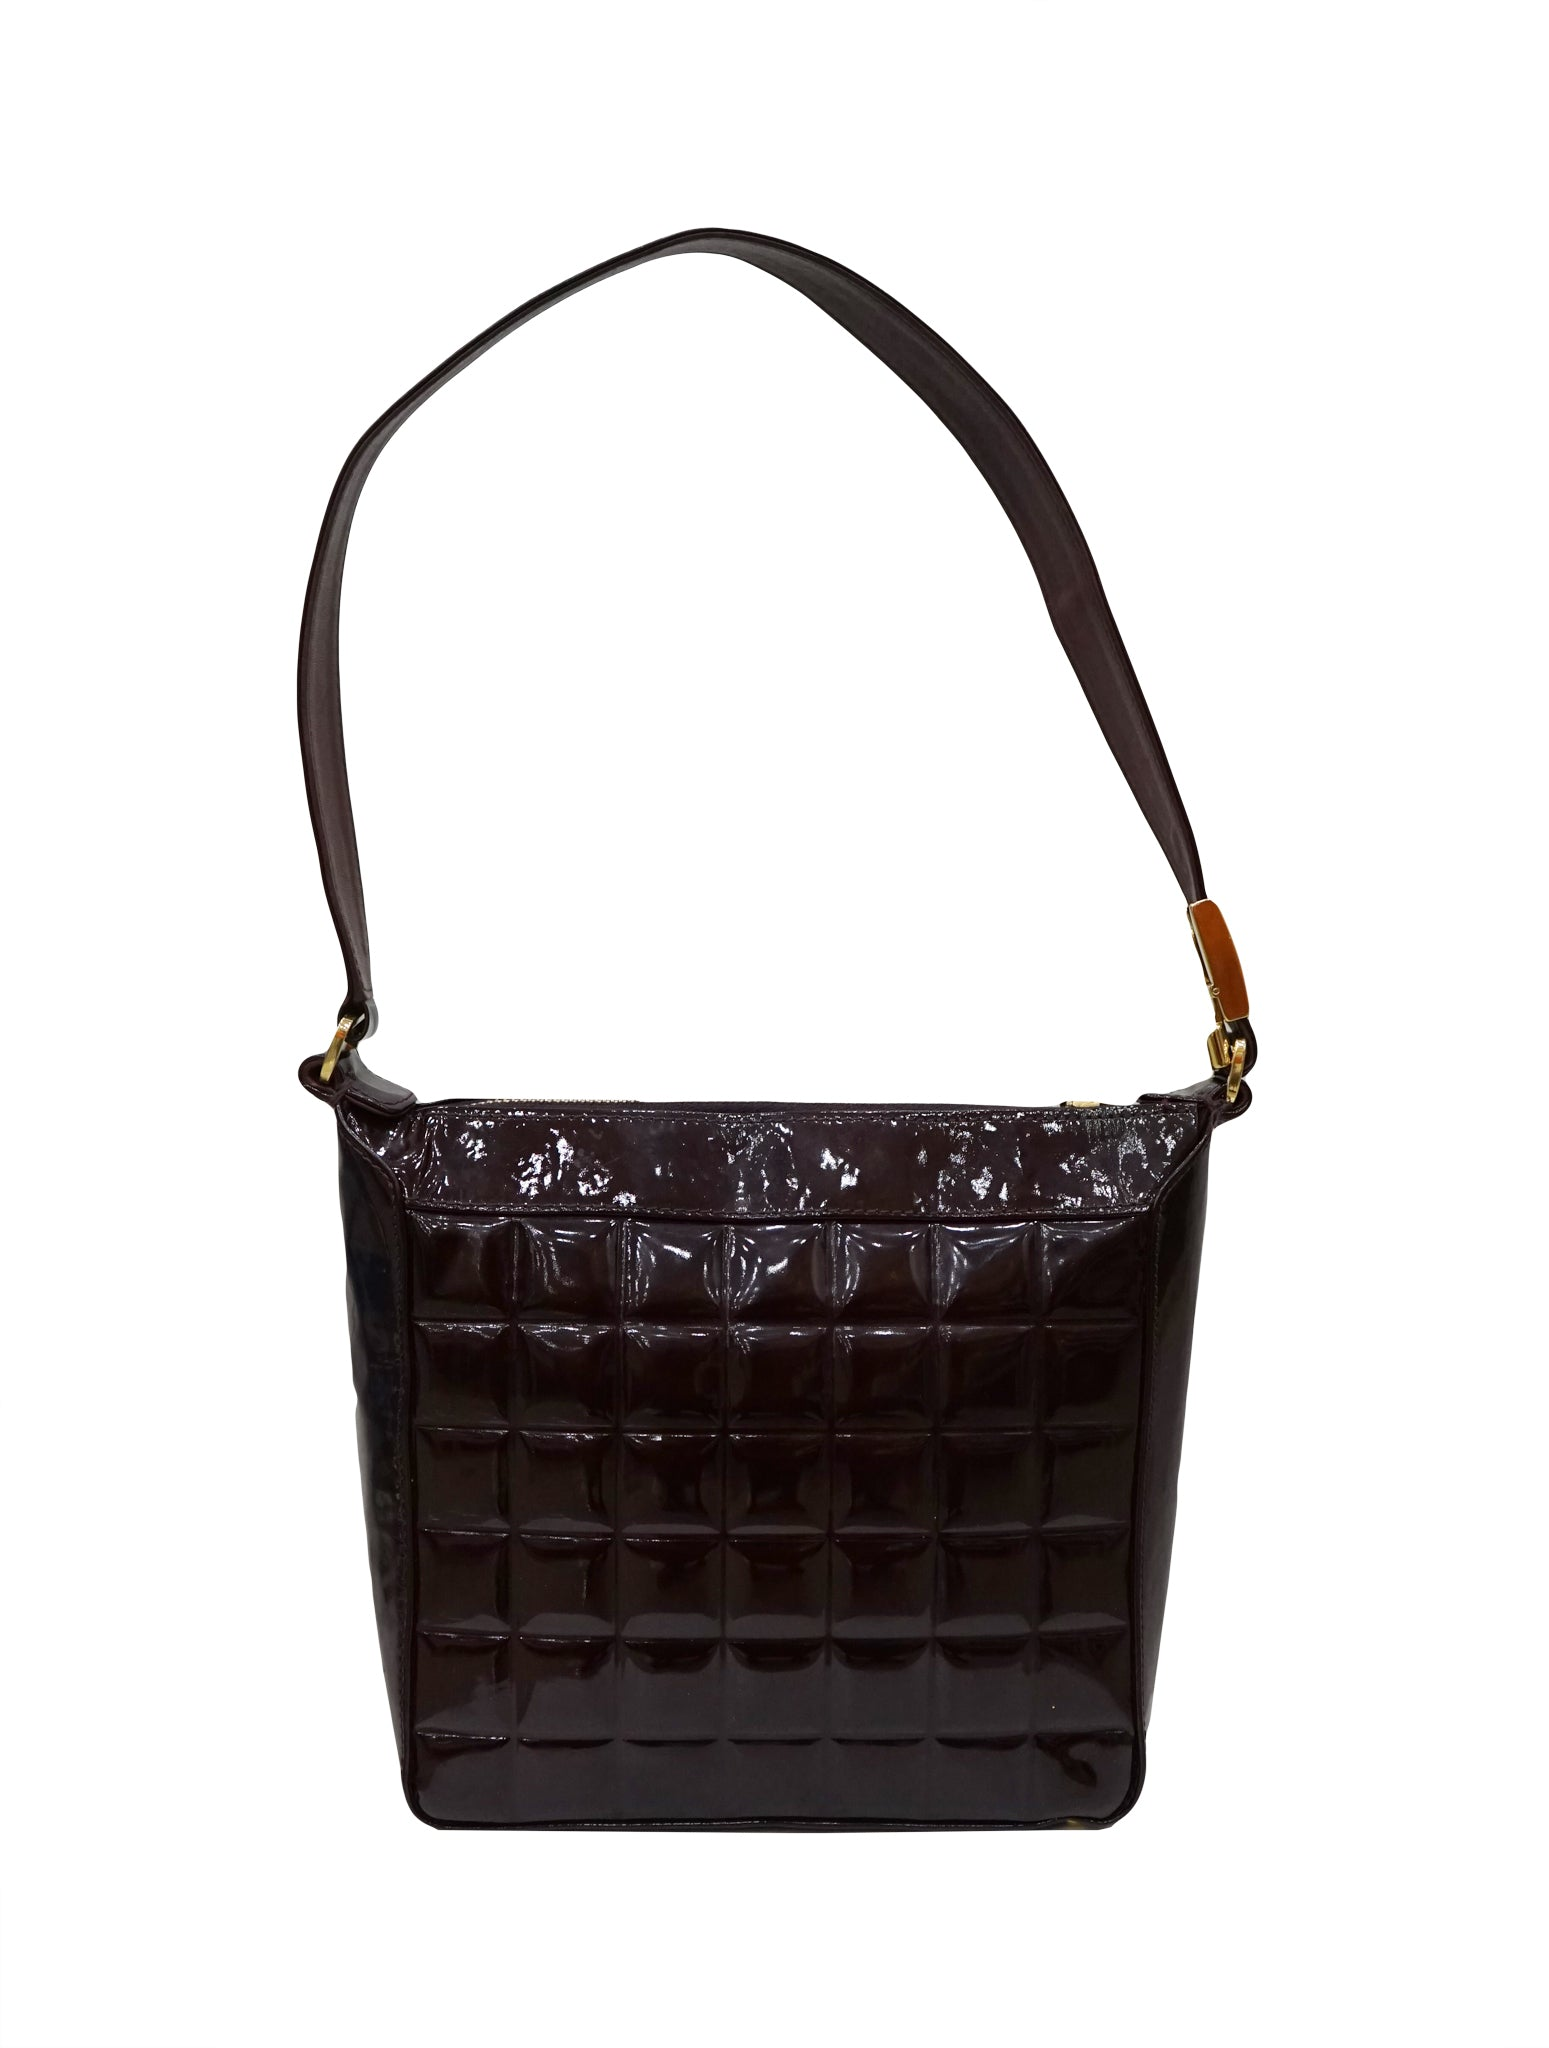 PATENT LEATHER CHOCOLATE BAR BAG